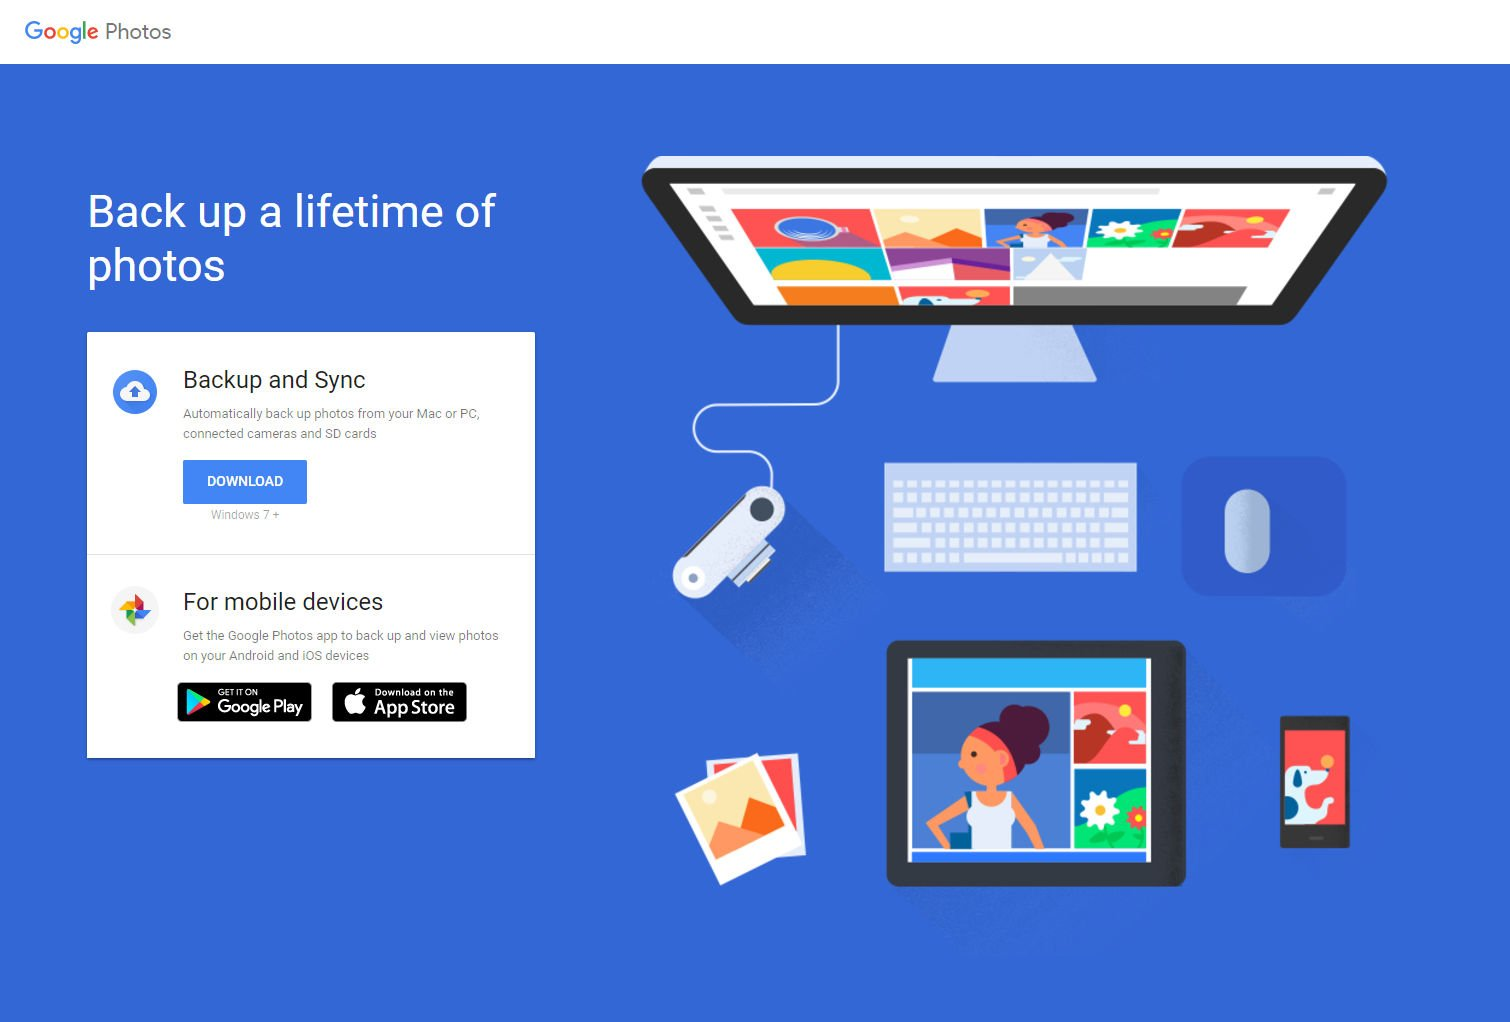 Last July Google decided to pull the plug on Google Drive and wanted its users to move to the new Backup and Sync. Worry not, Google has prepared a successor to the Google Drive app called Backup and Sync. Those who currently access their Google Drive or Photos might notice the nudge...